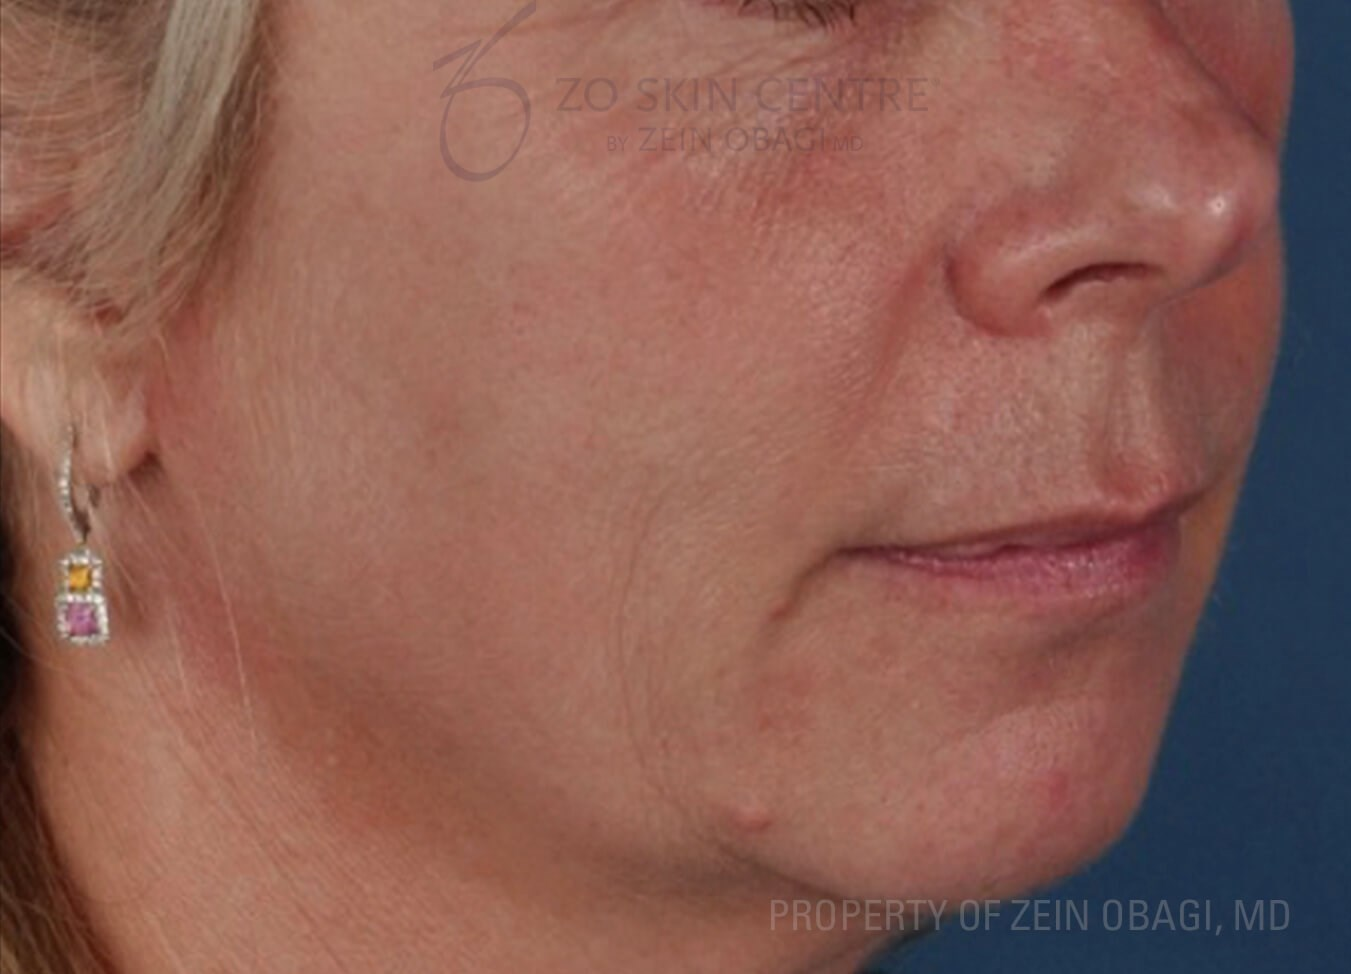 Photoaging and Skin Laxity Before Peel + Laser Treatment